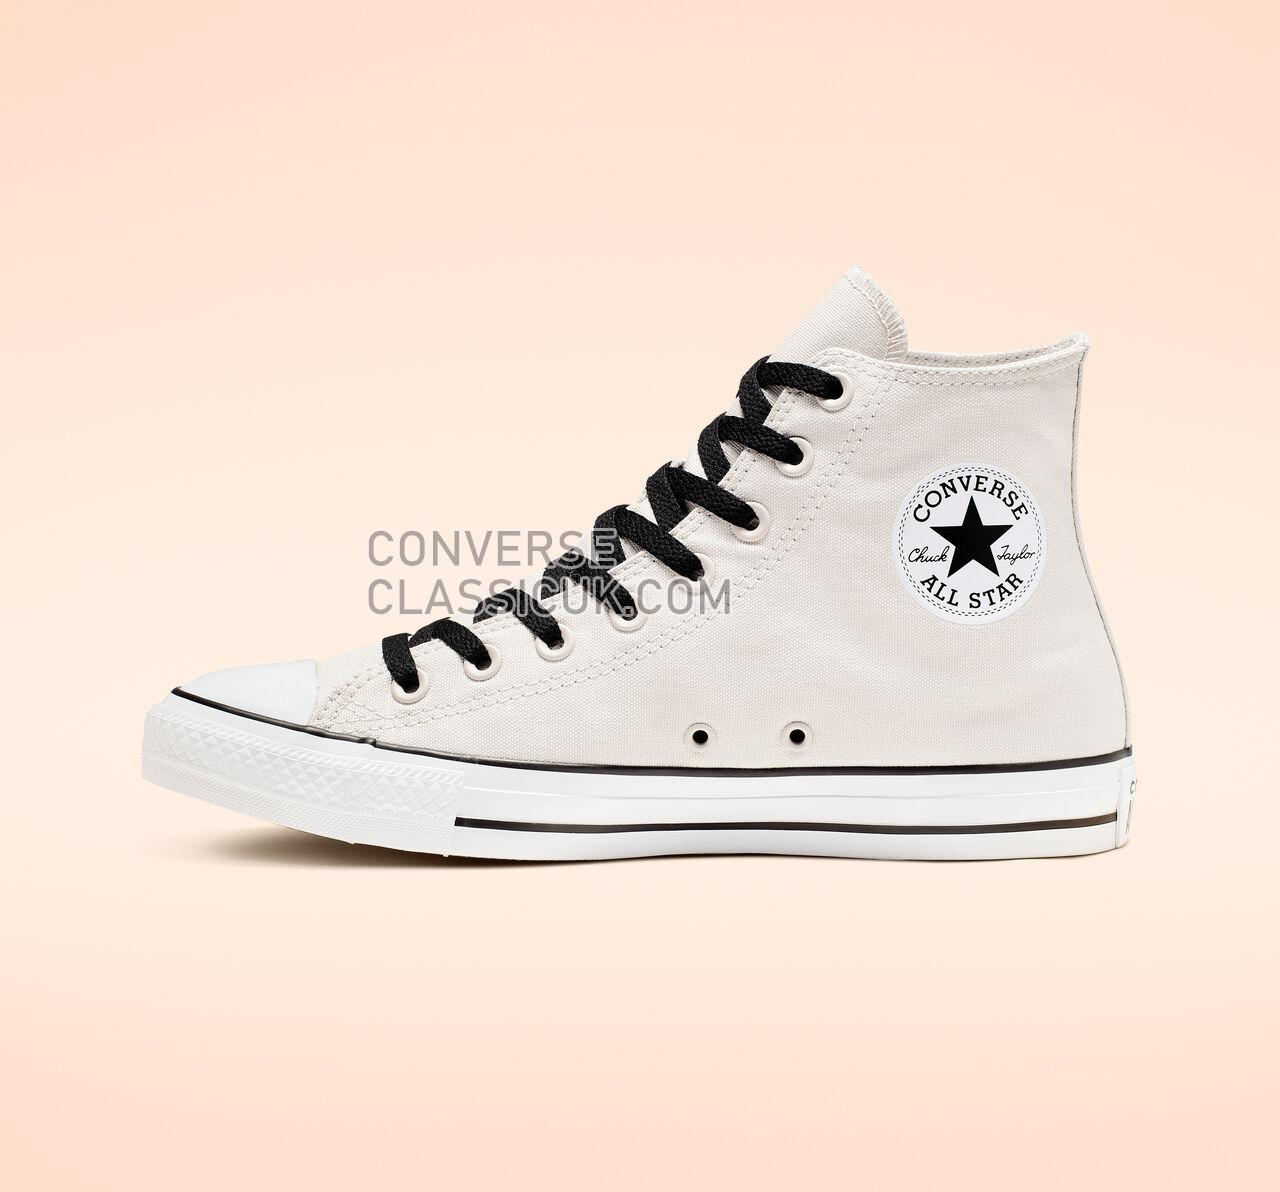 Converse Chuck Taylor All Star We Are Not Alone High Top Mens Womens Unisex 165468F Pale Putty/Black/White Shoes